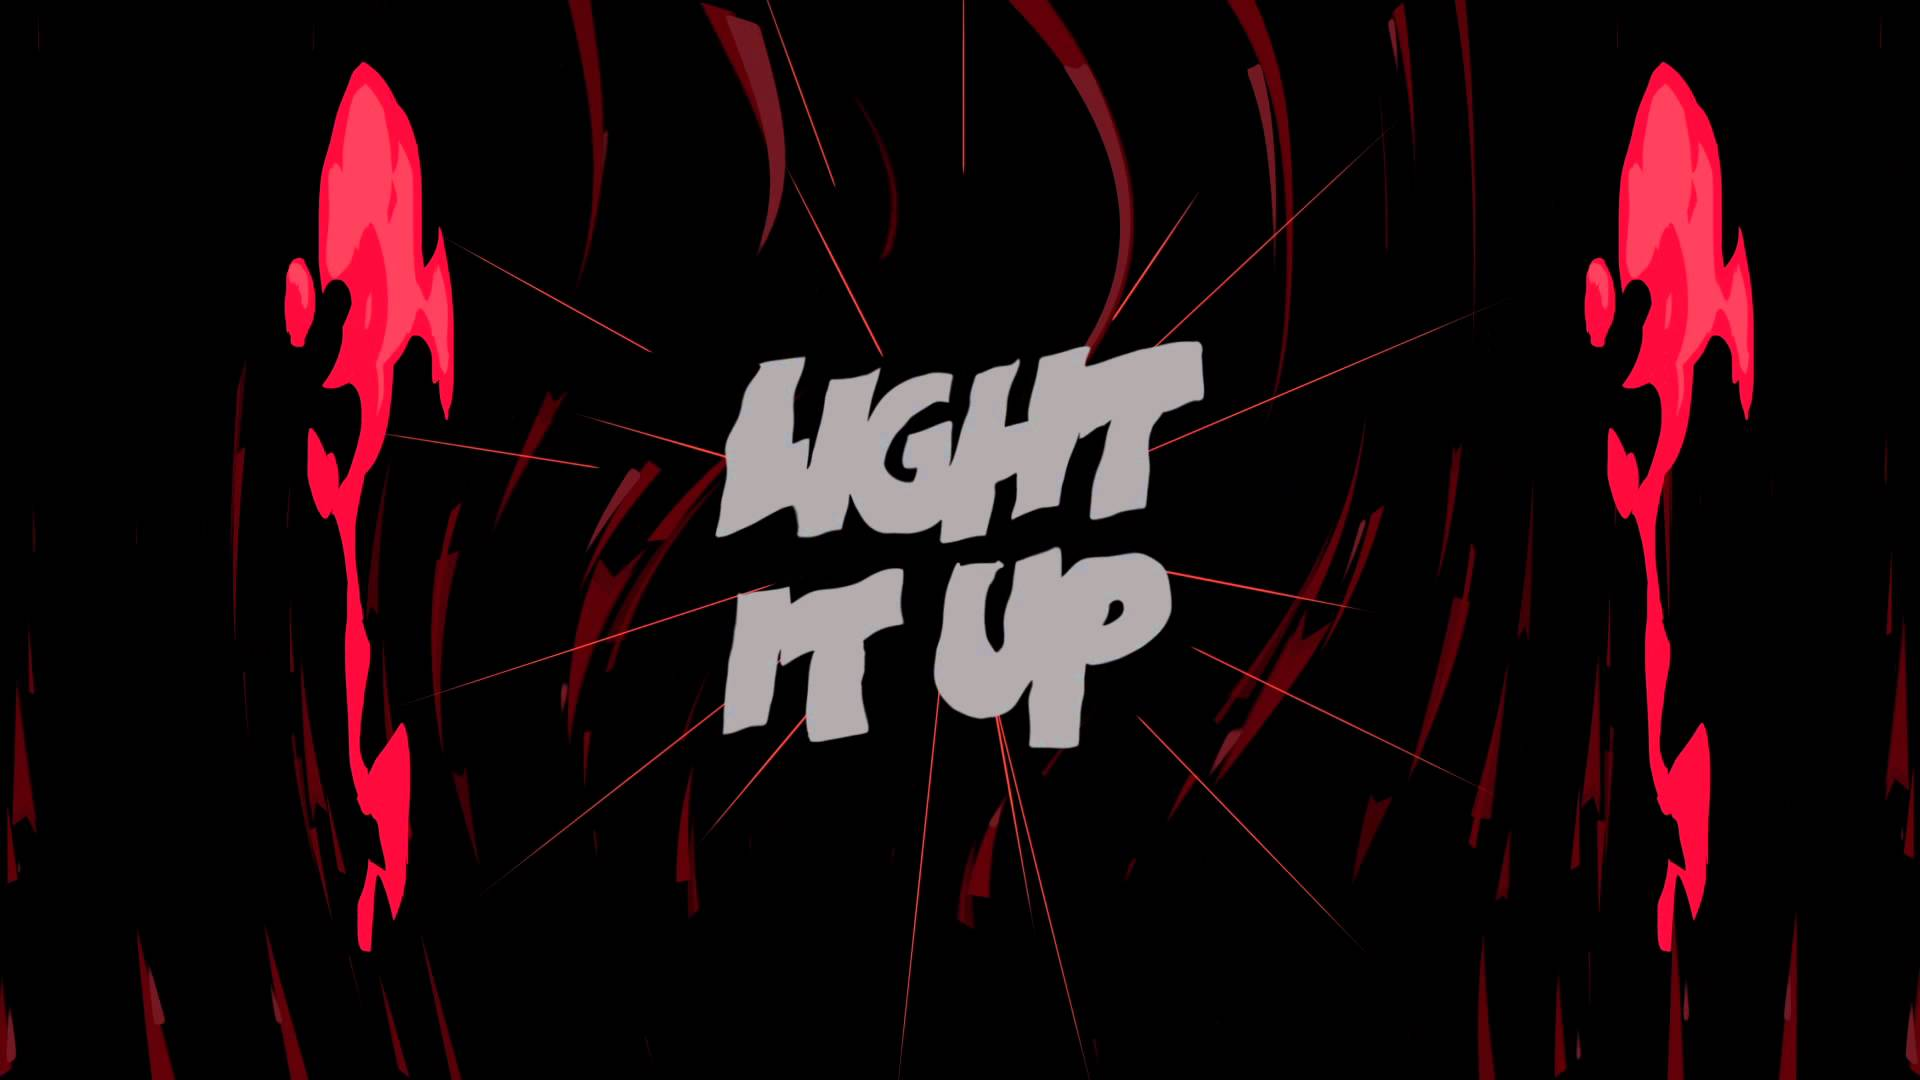 скачать музыку бесплатно light it up major lazer nyla fuse odg light it up